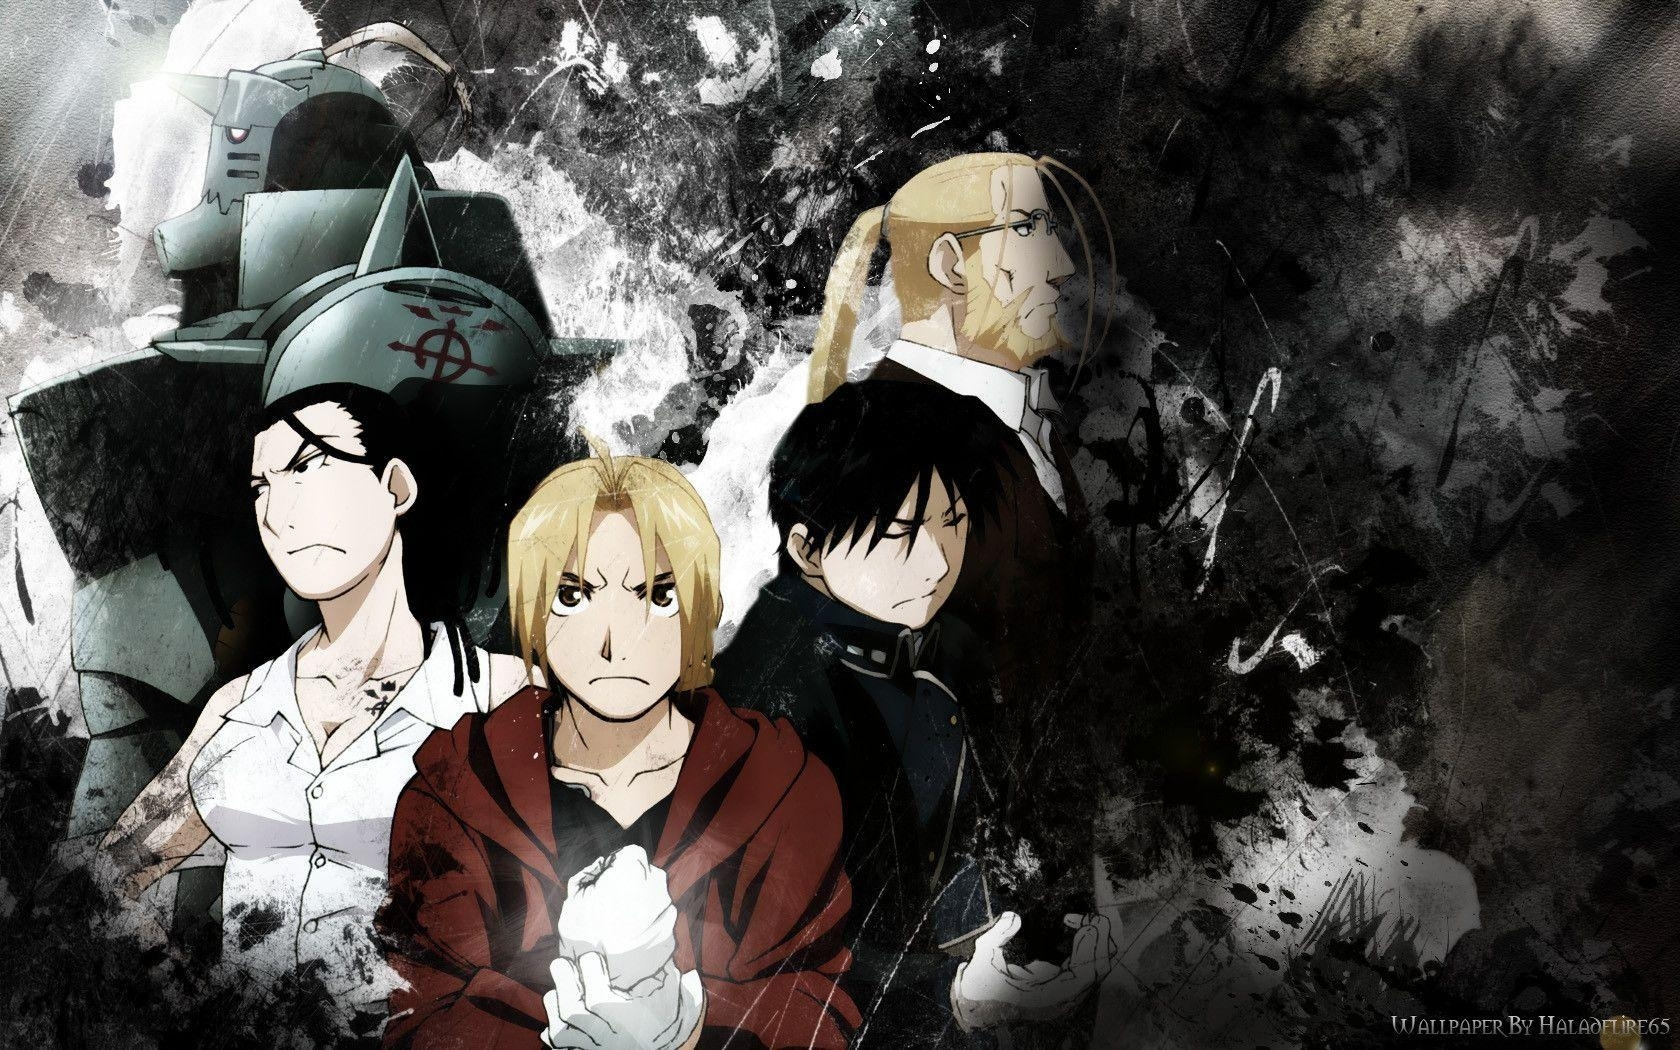 fullmetal alchemist brotherhood wallpapers - wallpaper cave